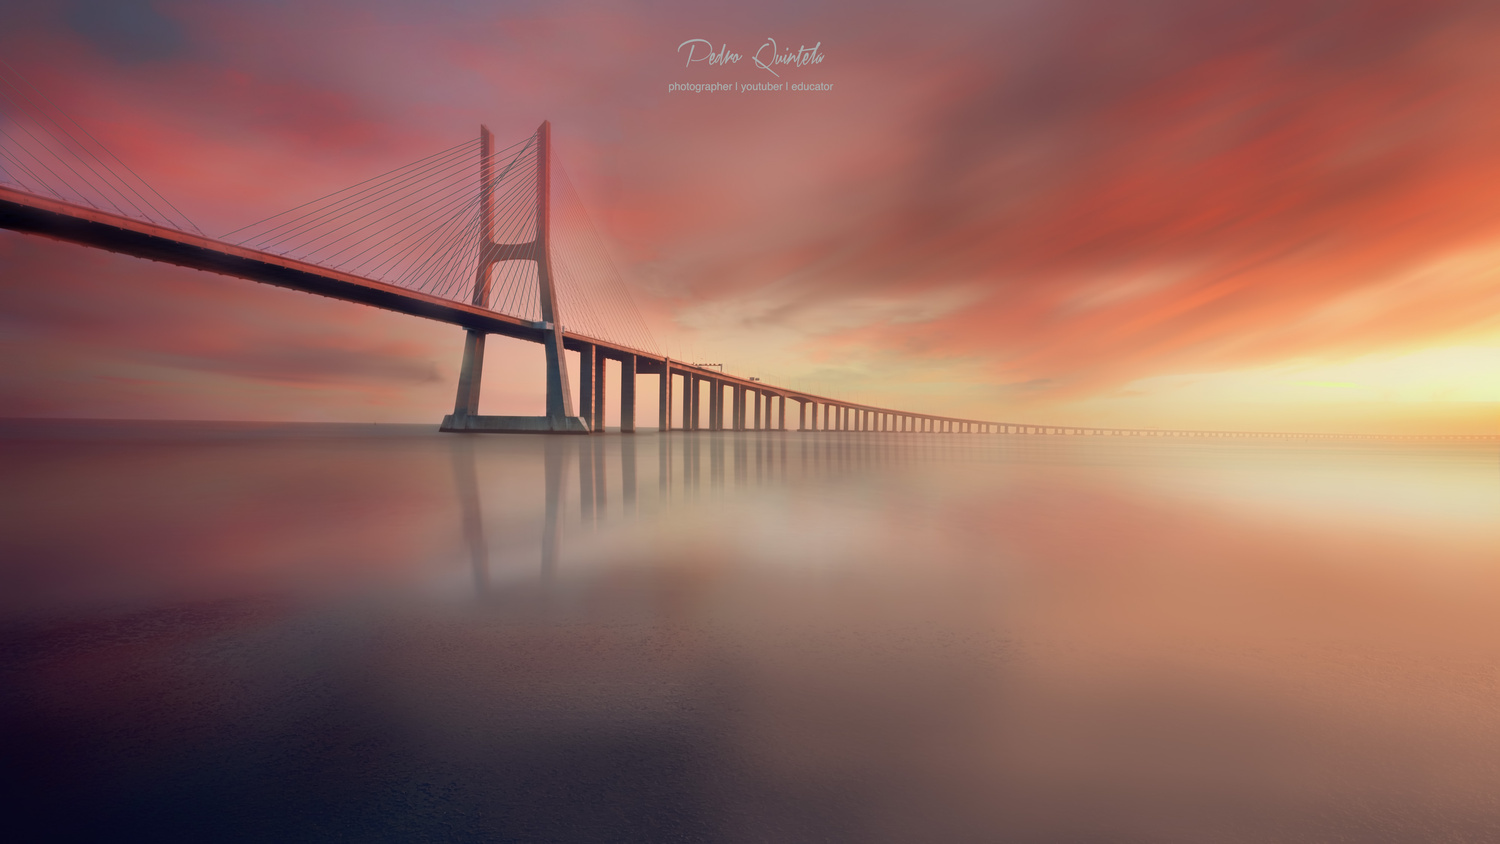 """Higher Dimension"" by Pedro Quintela"